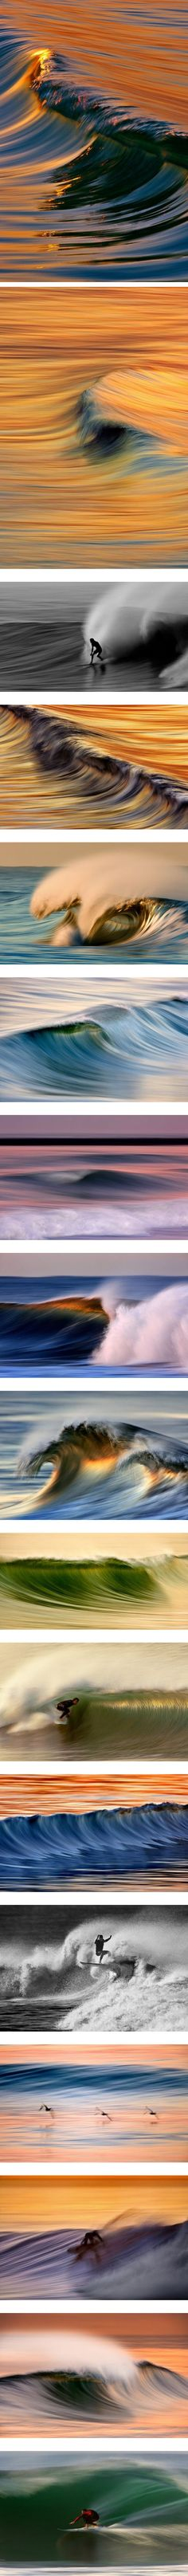 David Orias Sun Tide Waves Photography...this would make an awesome photo gallery!